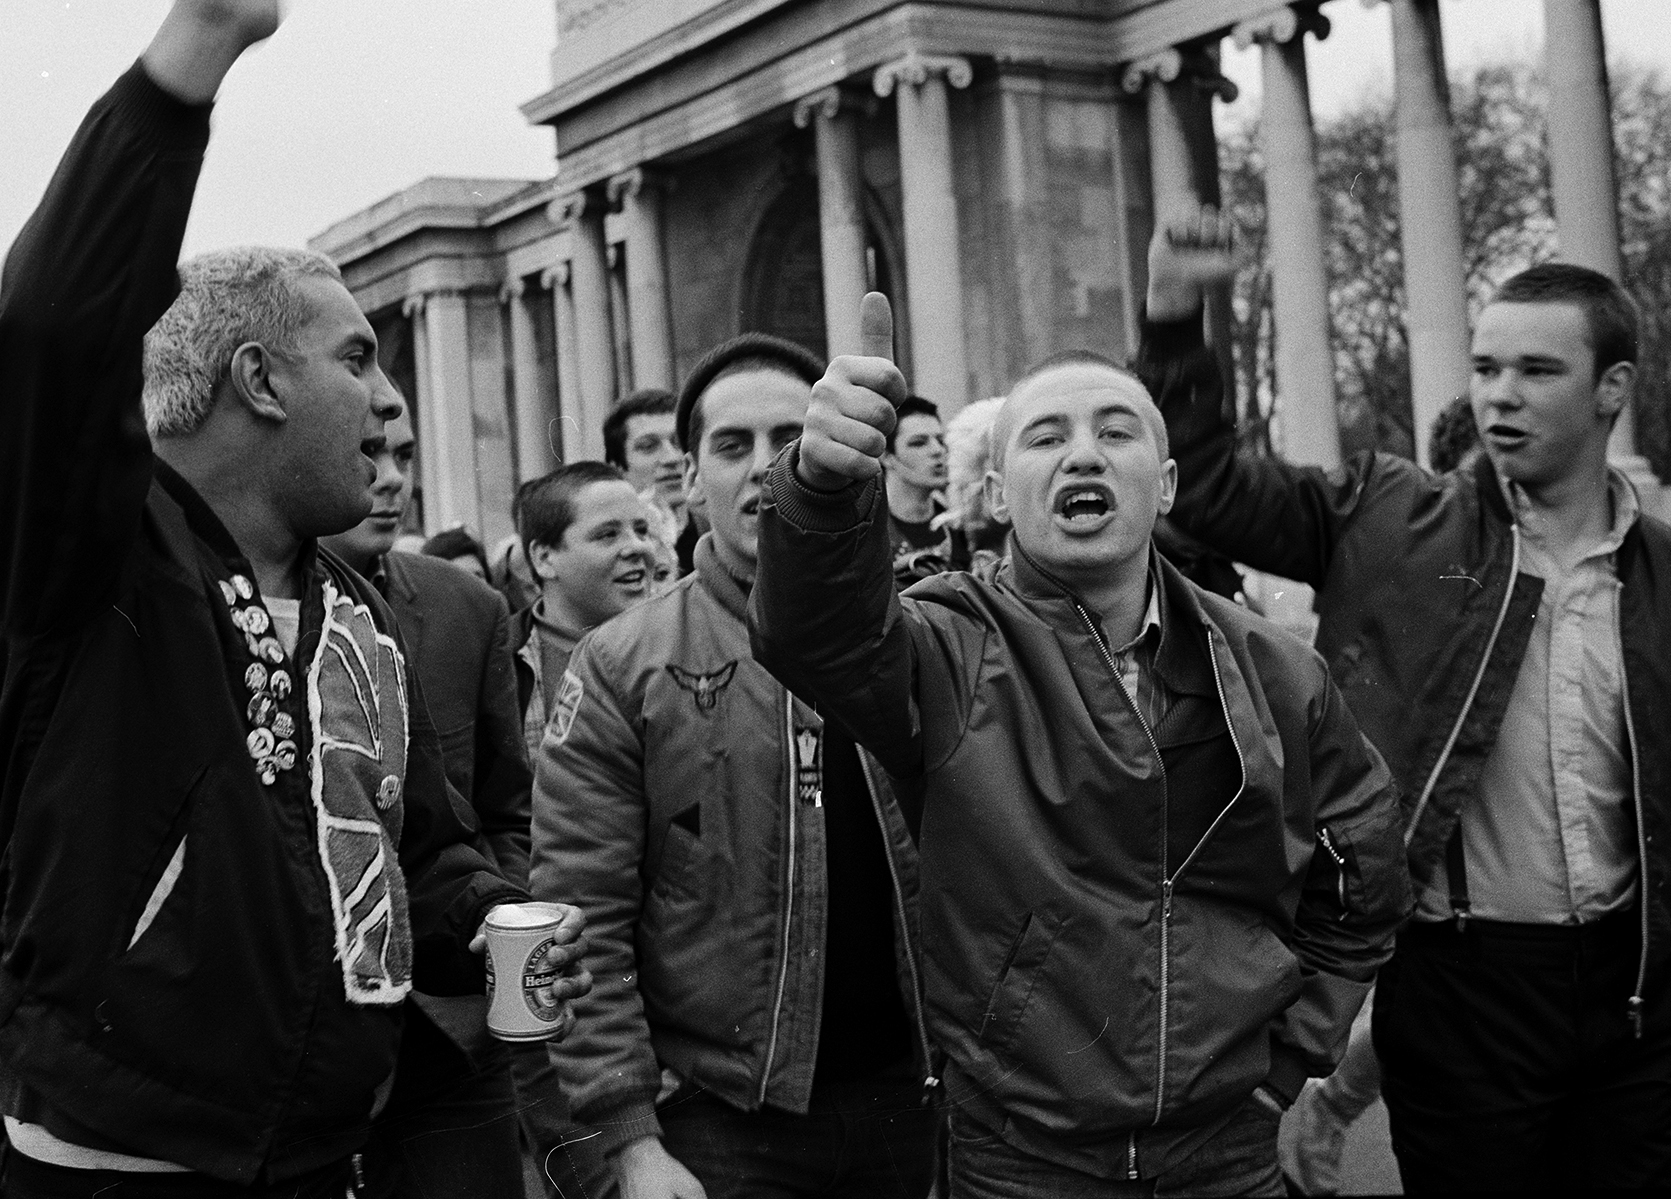 Skinheads by Janette Beckman courtesy of Fahey/Klein